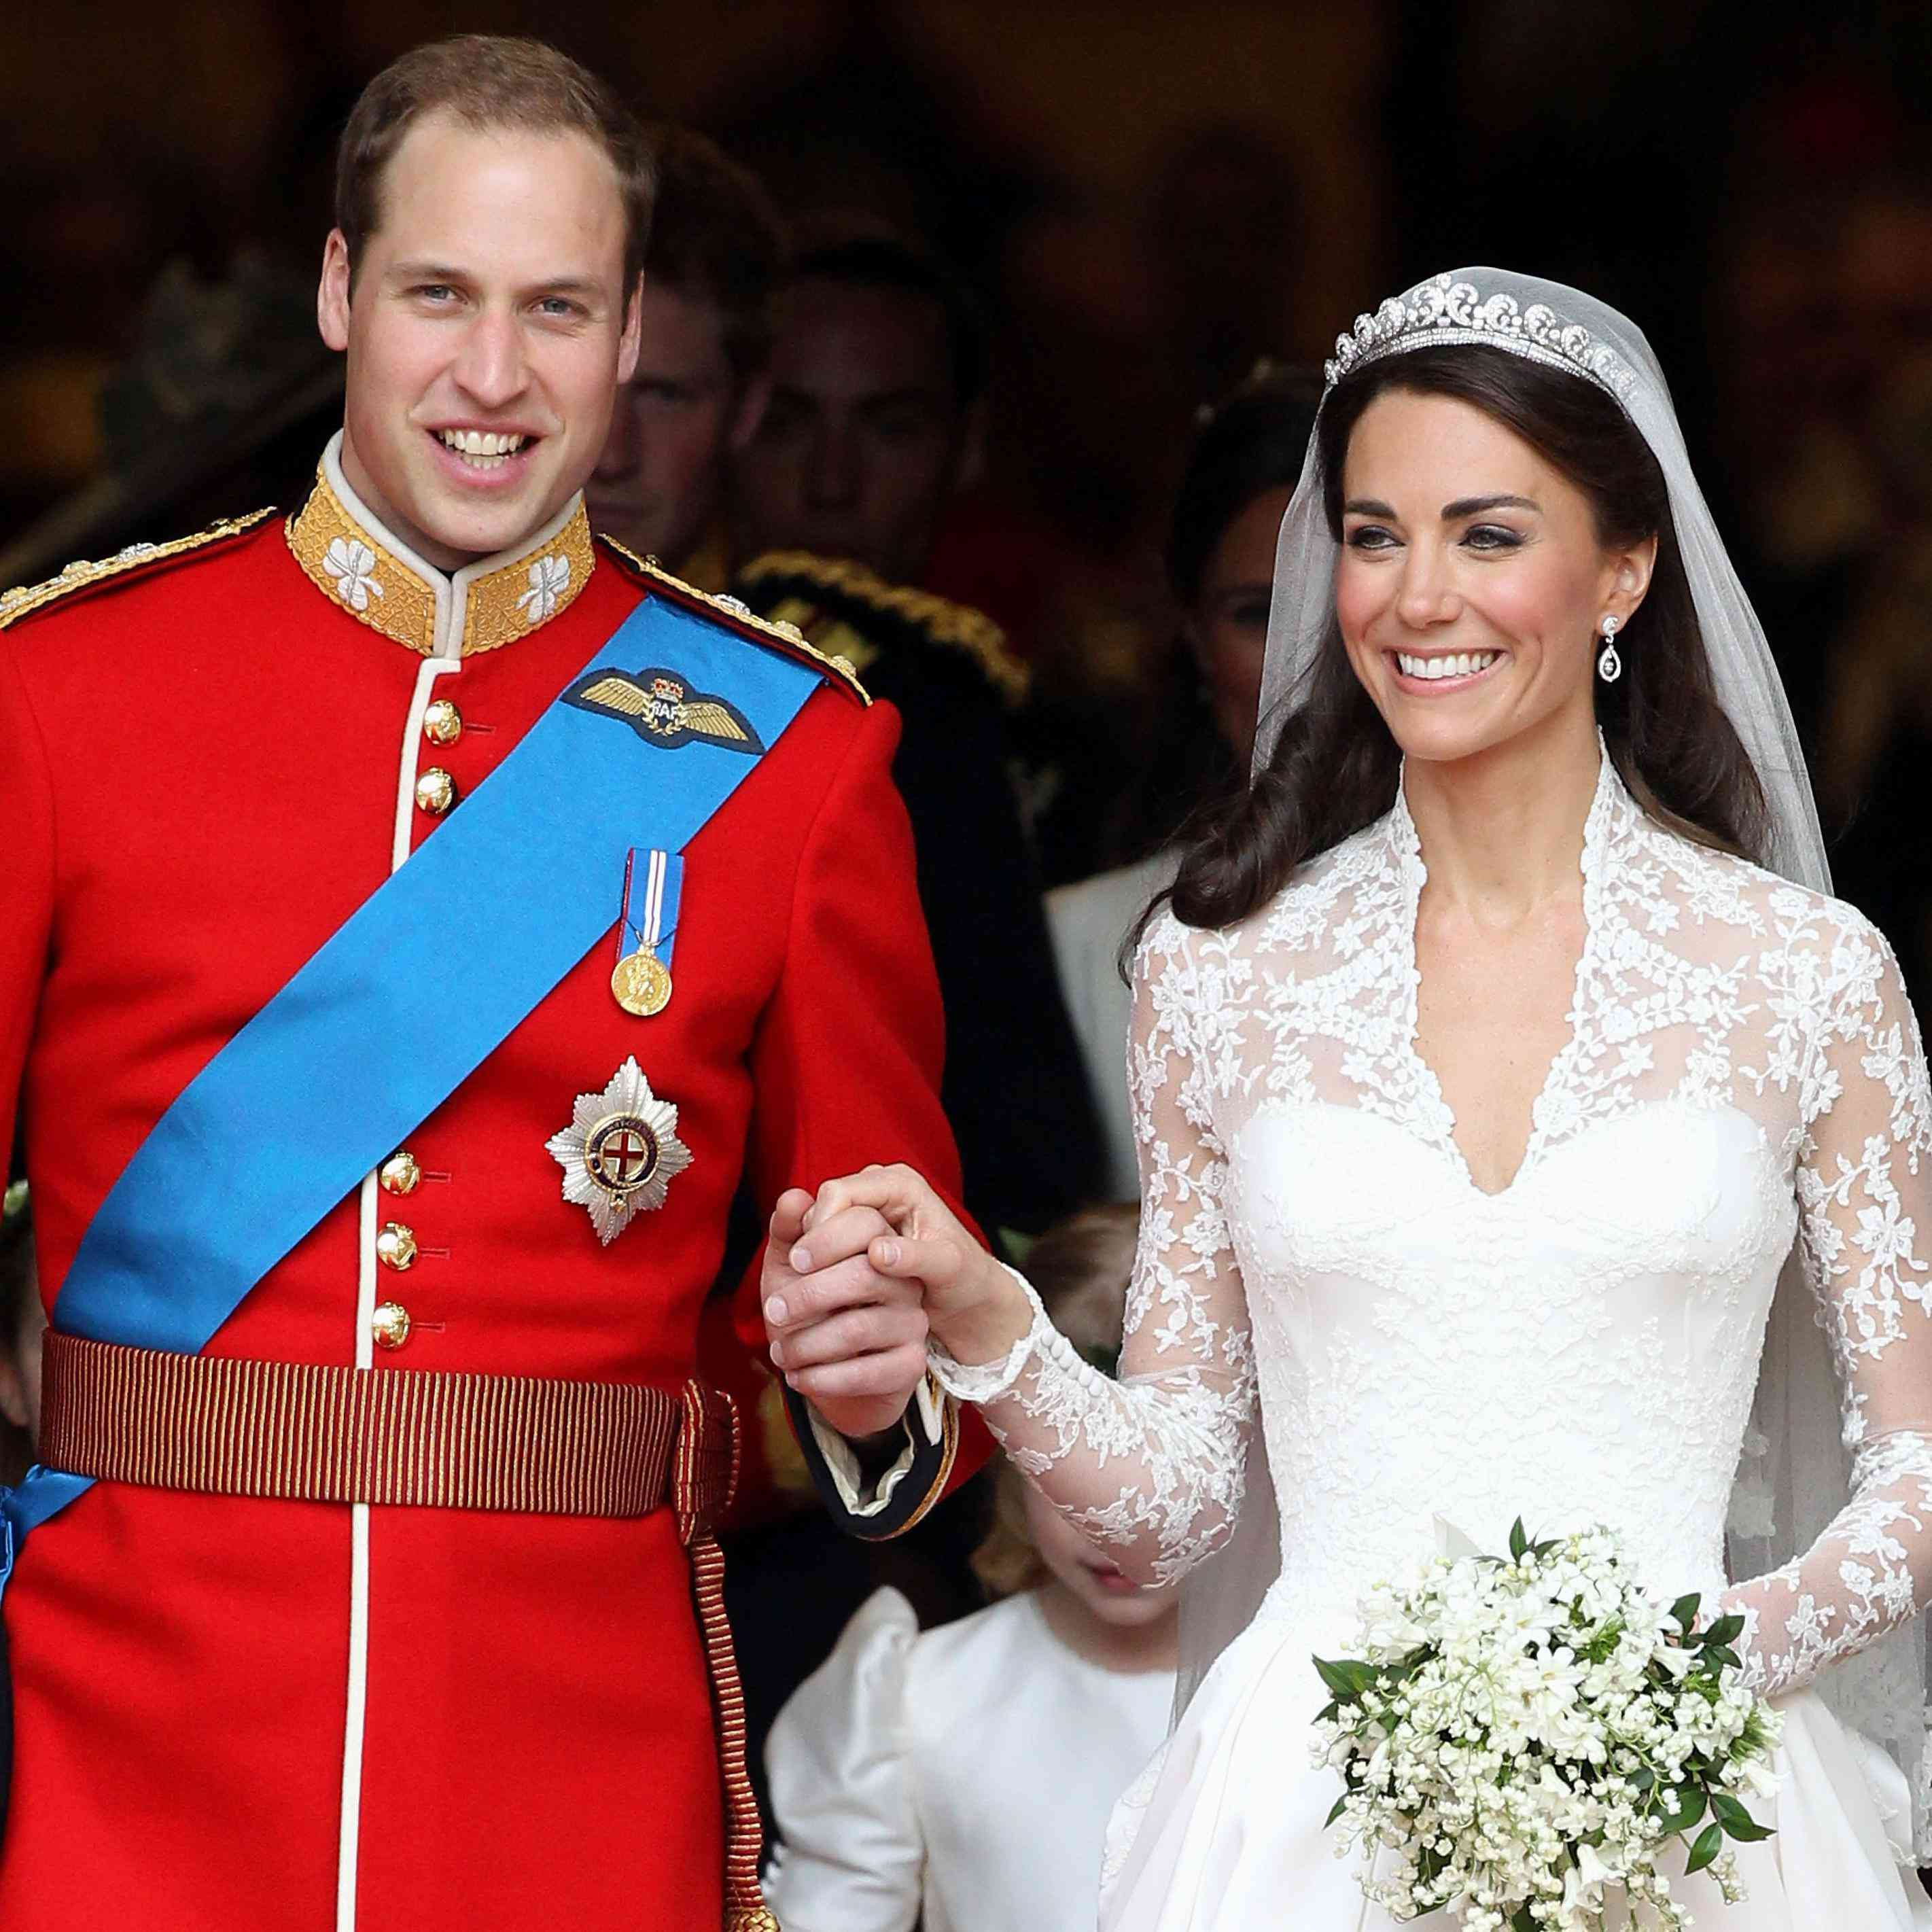 Pictures Of Royal Wedding.Kate Middleton And Prince William S Royal Wedding Day A